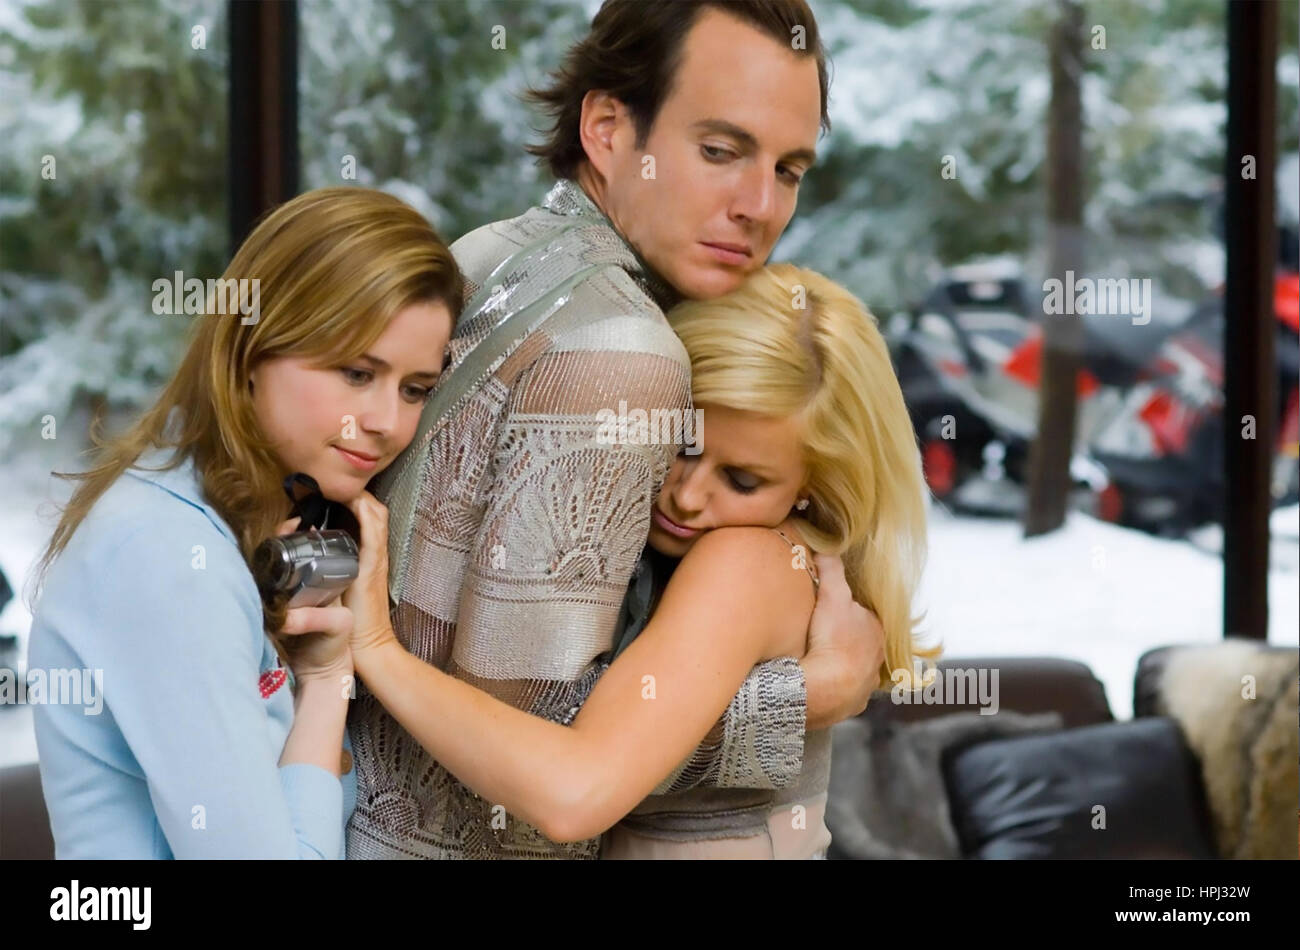 BLADES OF GLORY 2007 DreamWorks film with from left:  Jenna Fischer,  Will Arnett, Amy Poehler - Stock Image